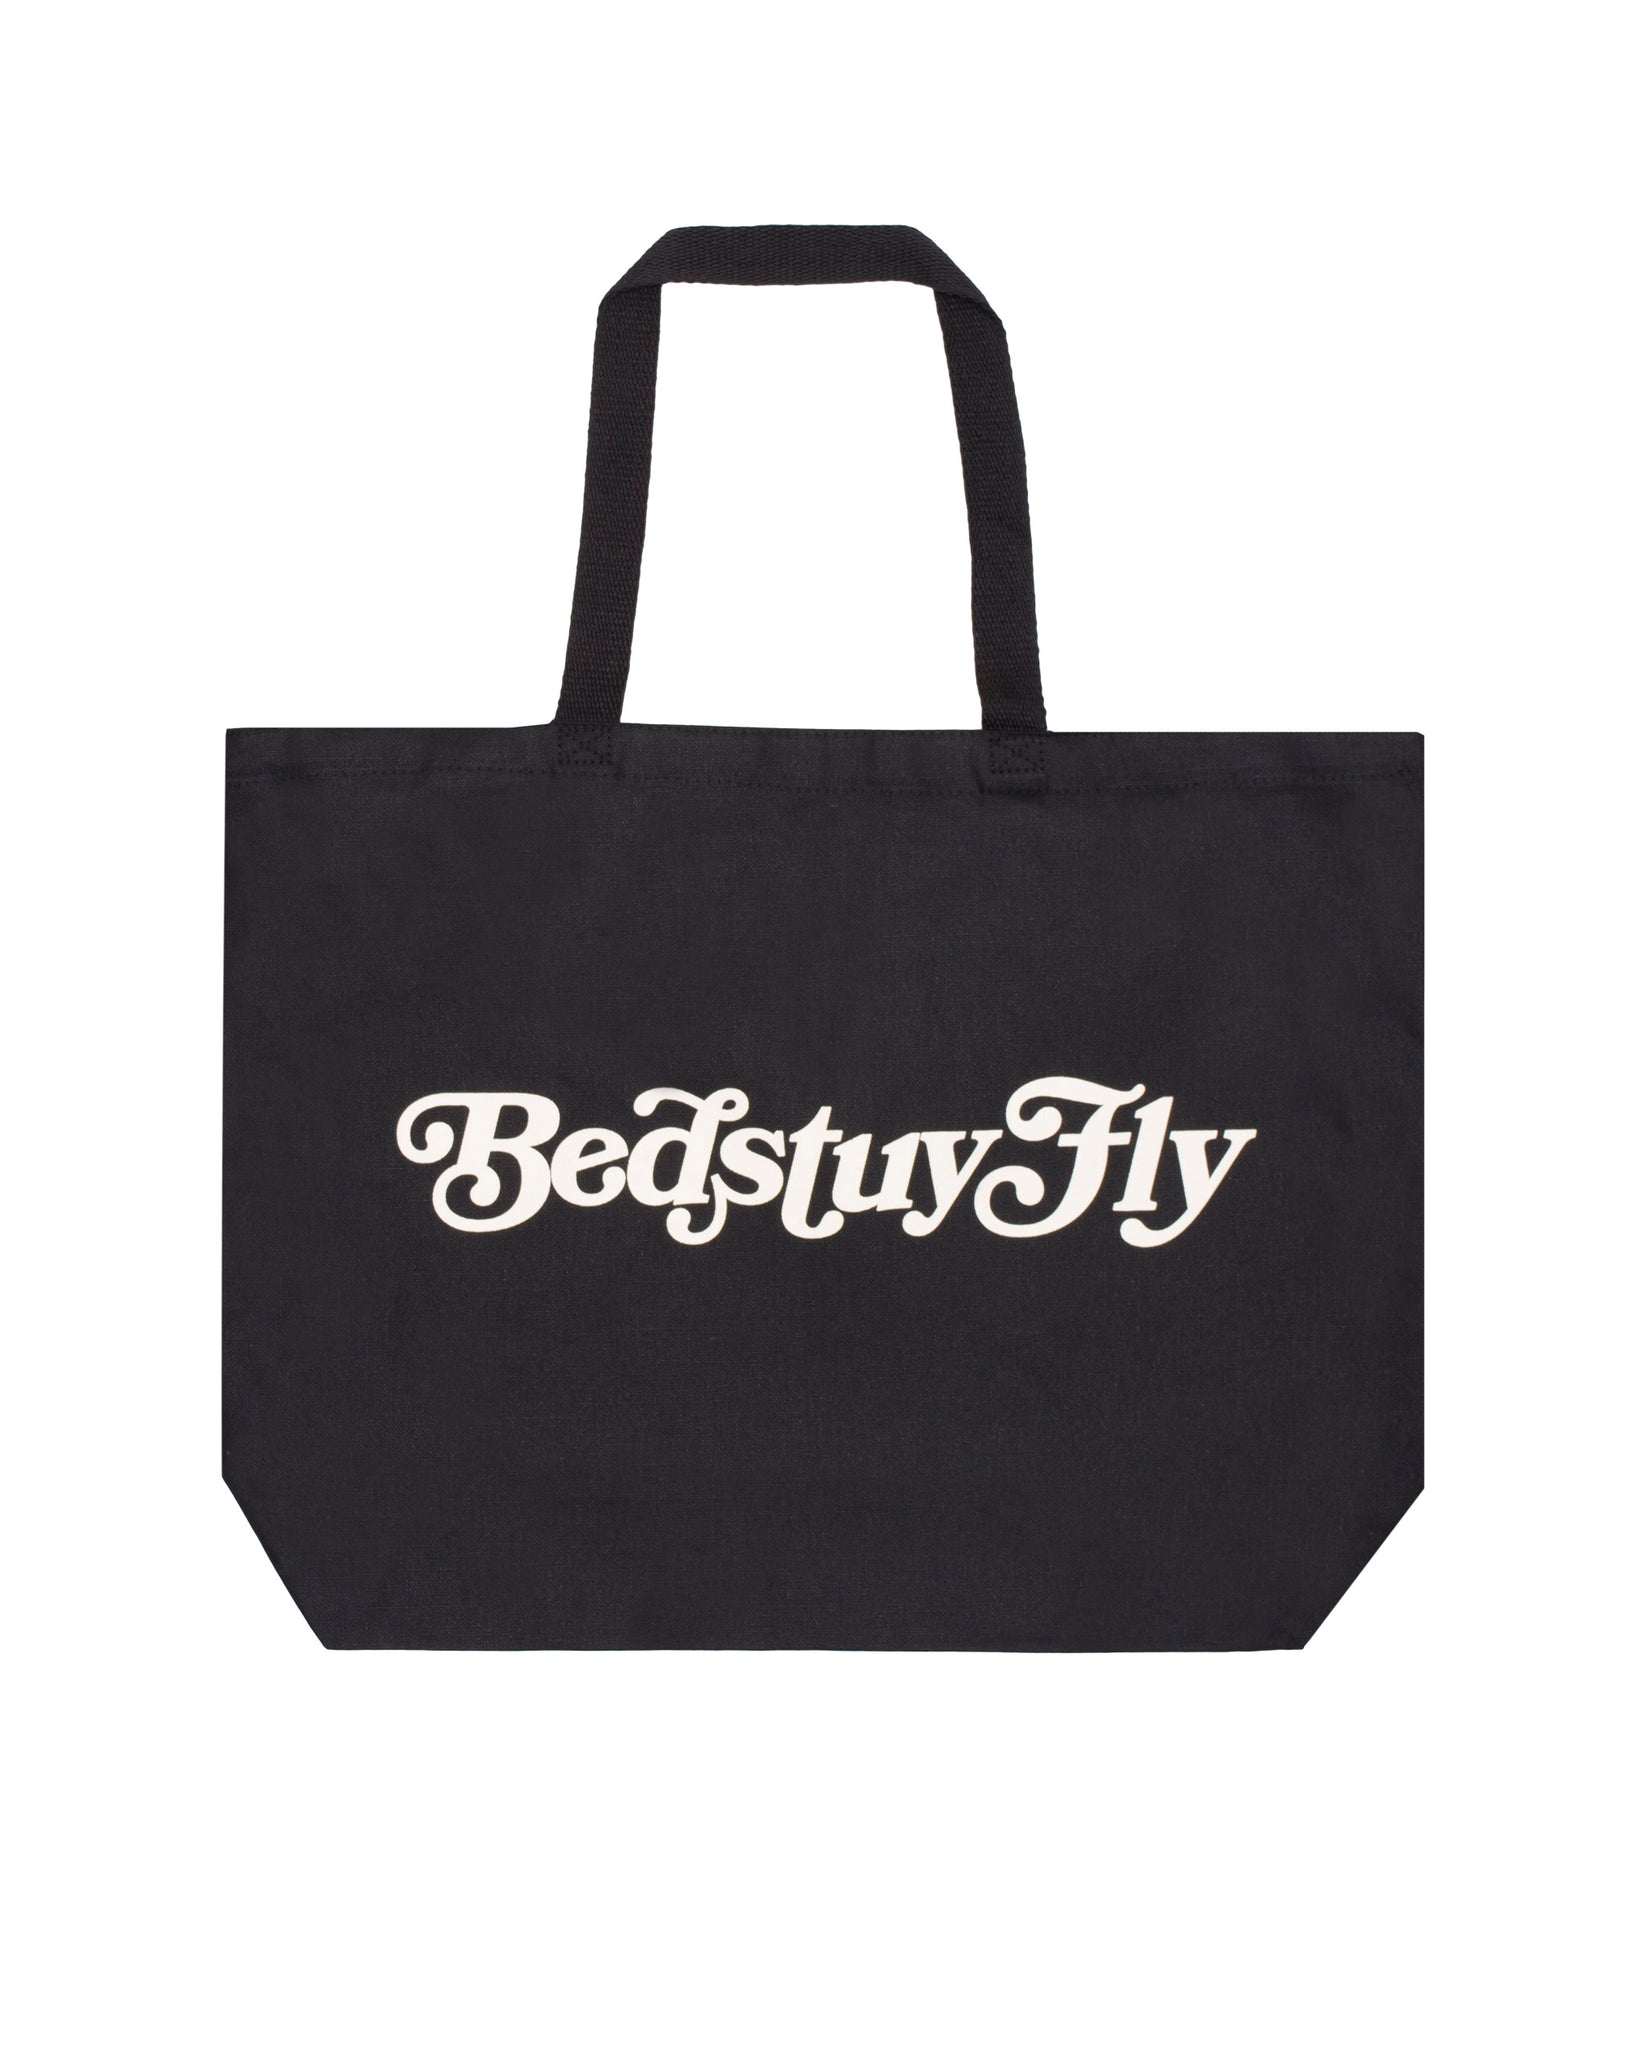 Mind Your Business Tote Bag (Blk/Crm)